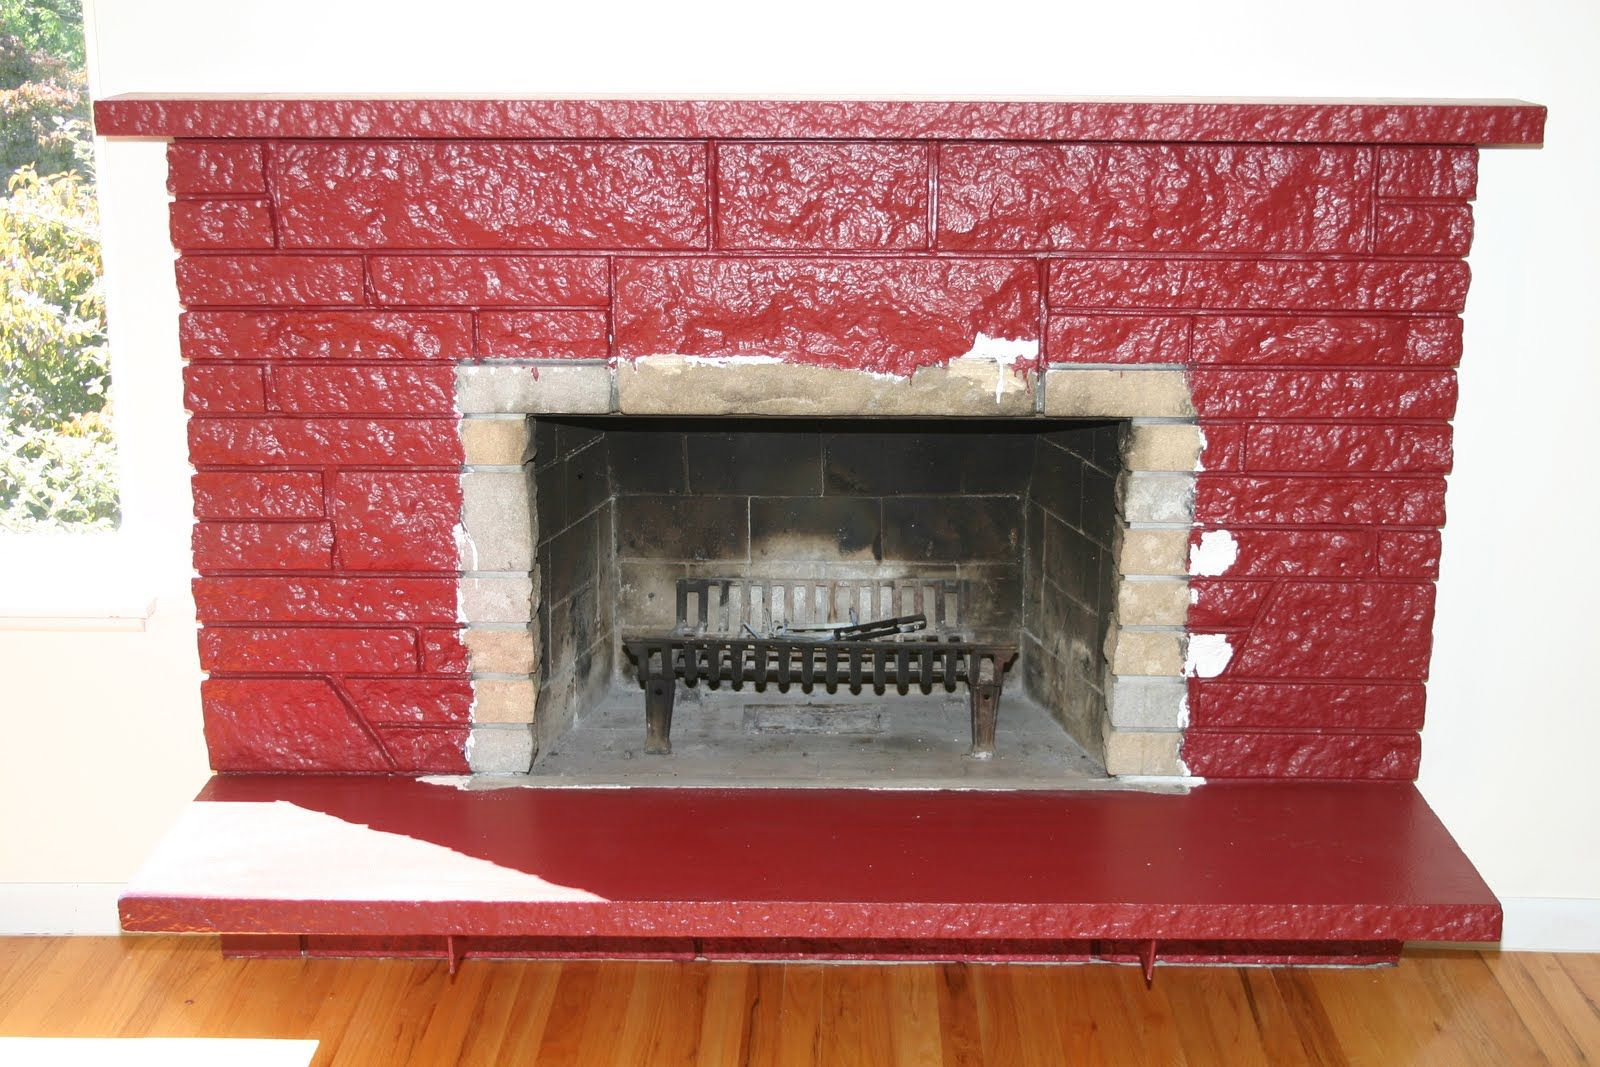 try Restoring a painted stone fireplace! | Fireplaces | Pinterest | Stone fireplaces